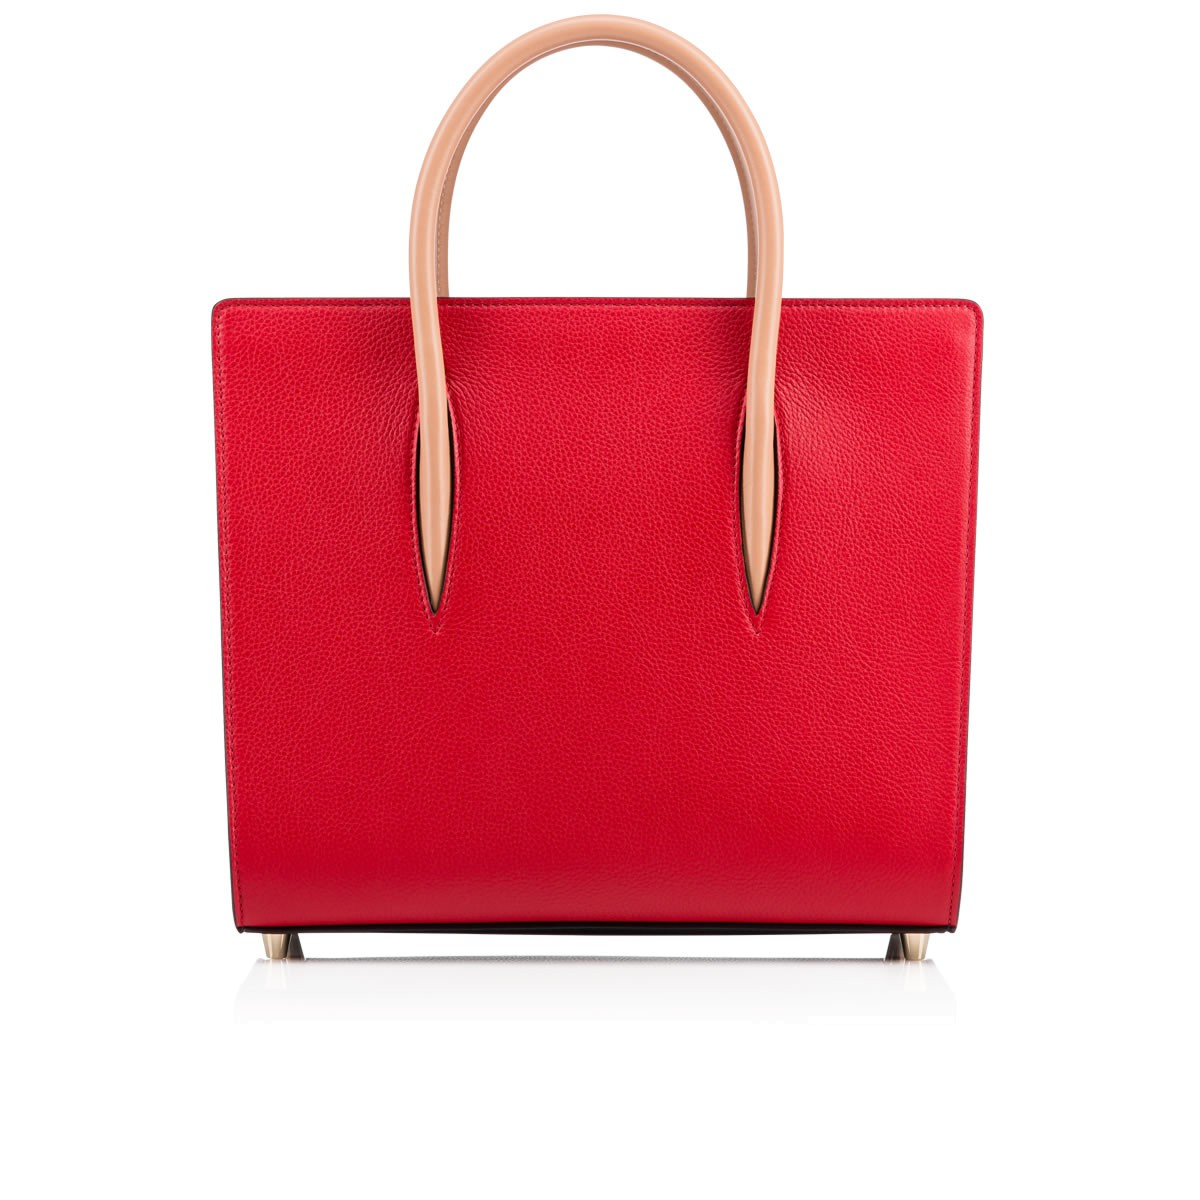 Paloma Medium Tote Bag Carmin Leather - Handbags - Christian Louboutin